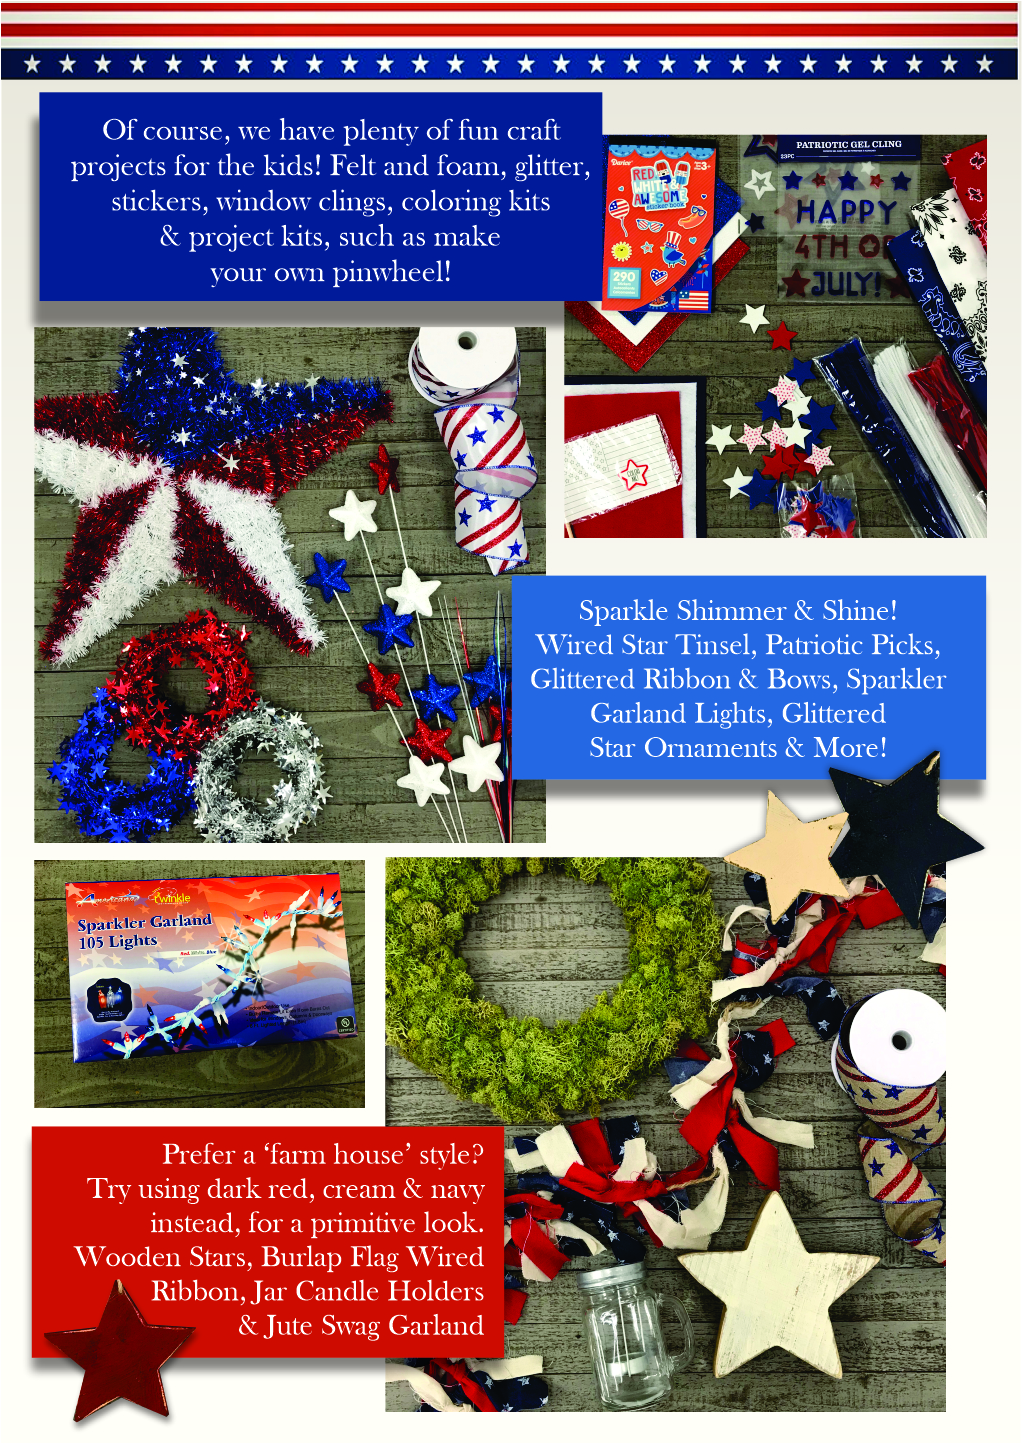 red white and blue ad p3.jpg